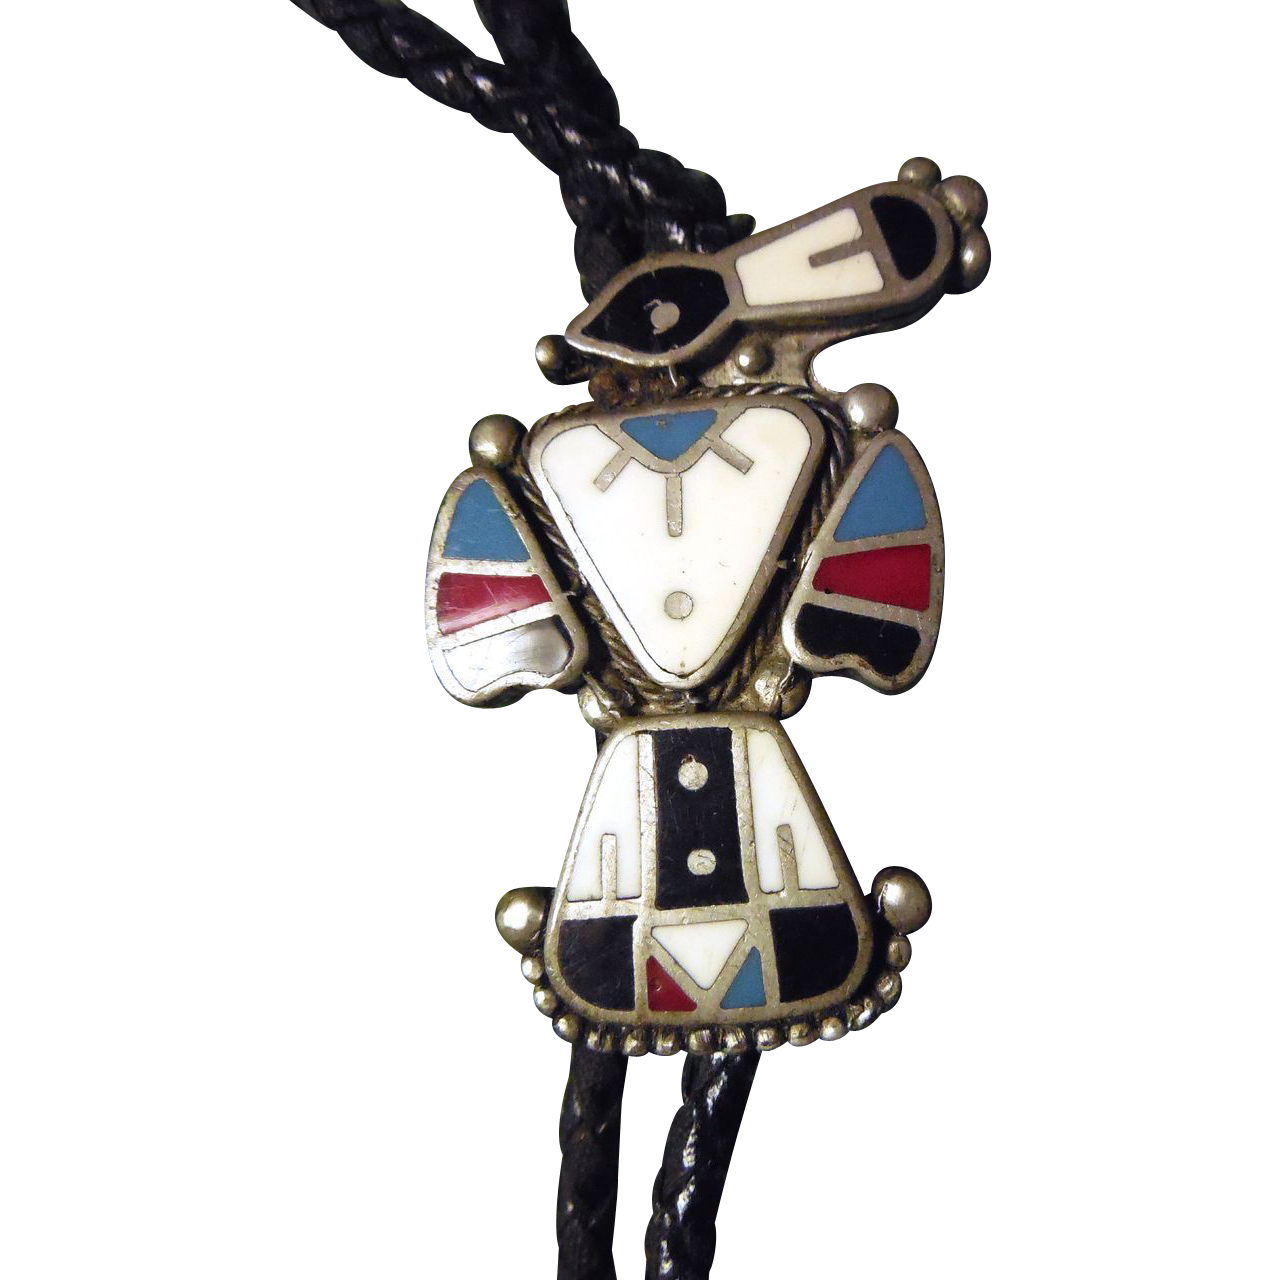 Vintage Zuni Magpie Native American Bolo Tie - Red White Blue Black Enamel